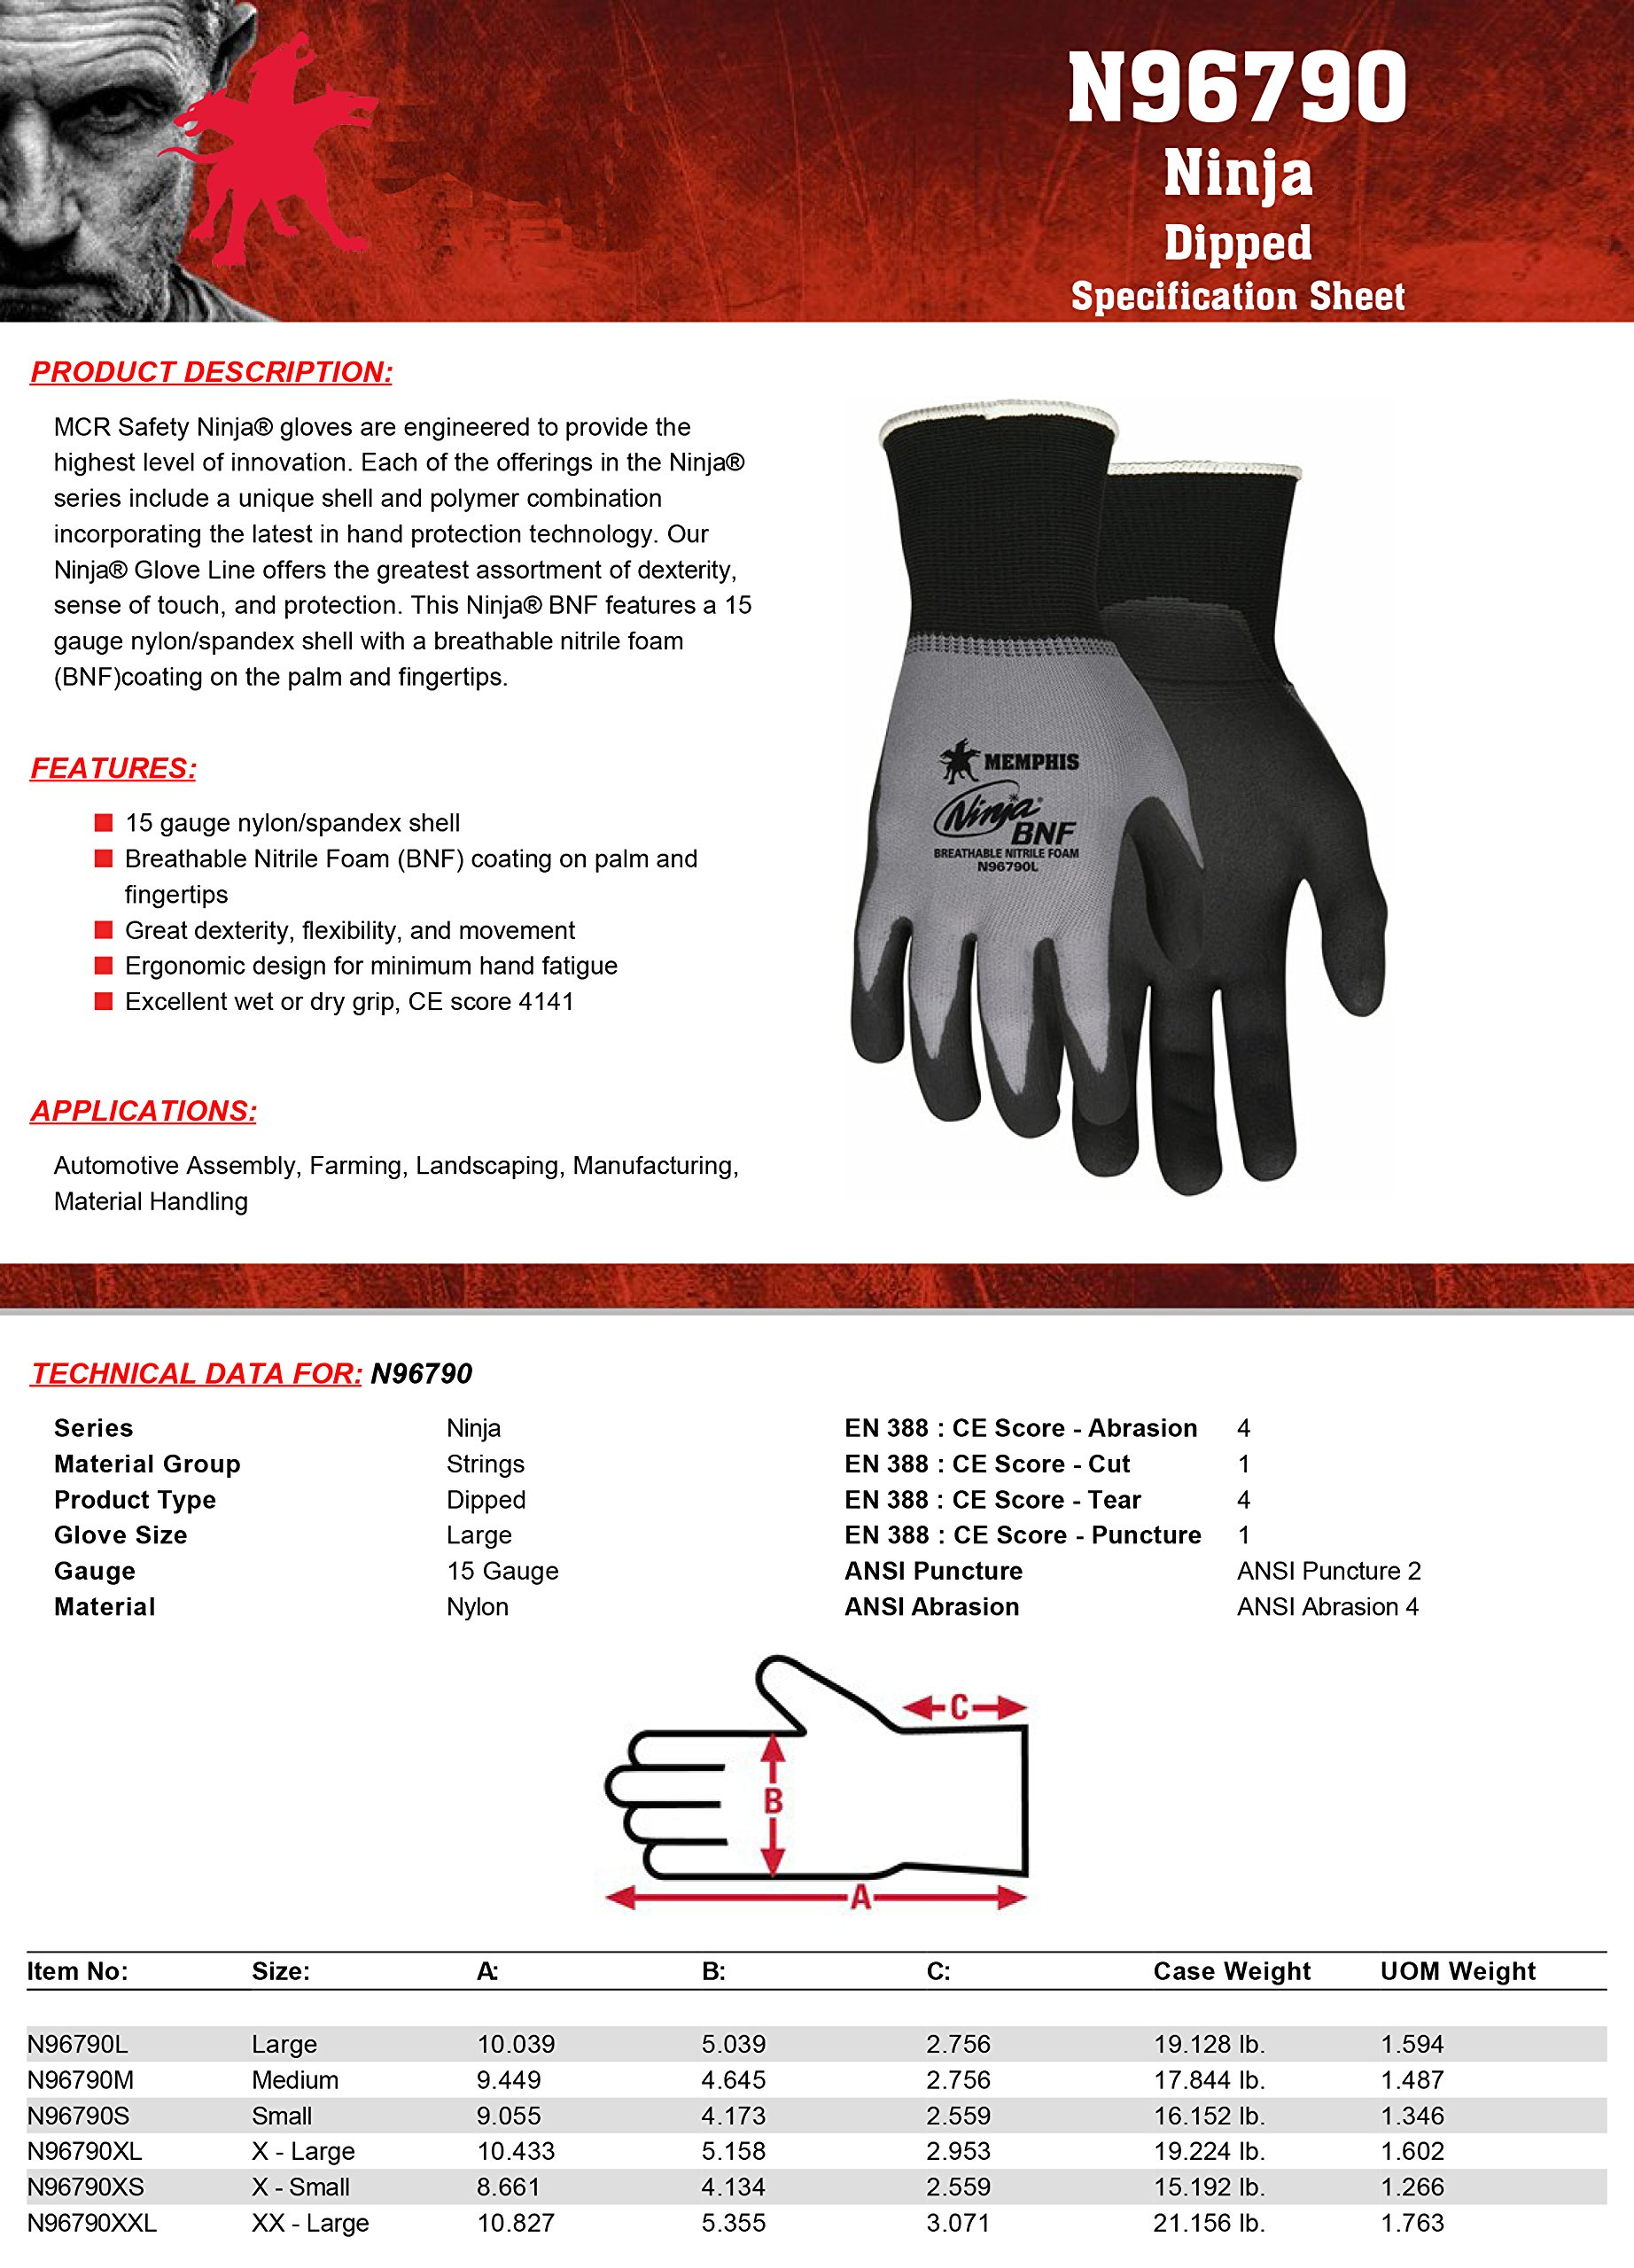 MCR Safety N96790XL Ninja BNF Nitrile Gloves, ANSI Puncture 2, Abrasion 4, 15 Gauge Nylon/Spandex Shell with BNF Palm & Fingertips, 1-Pair, X-Large